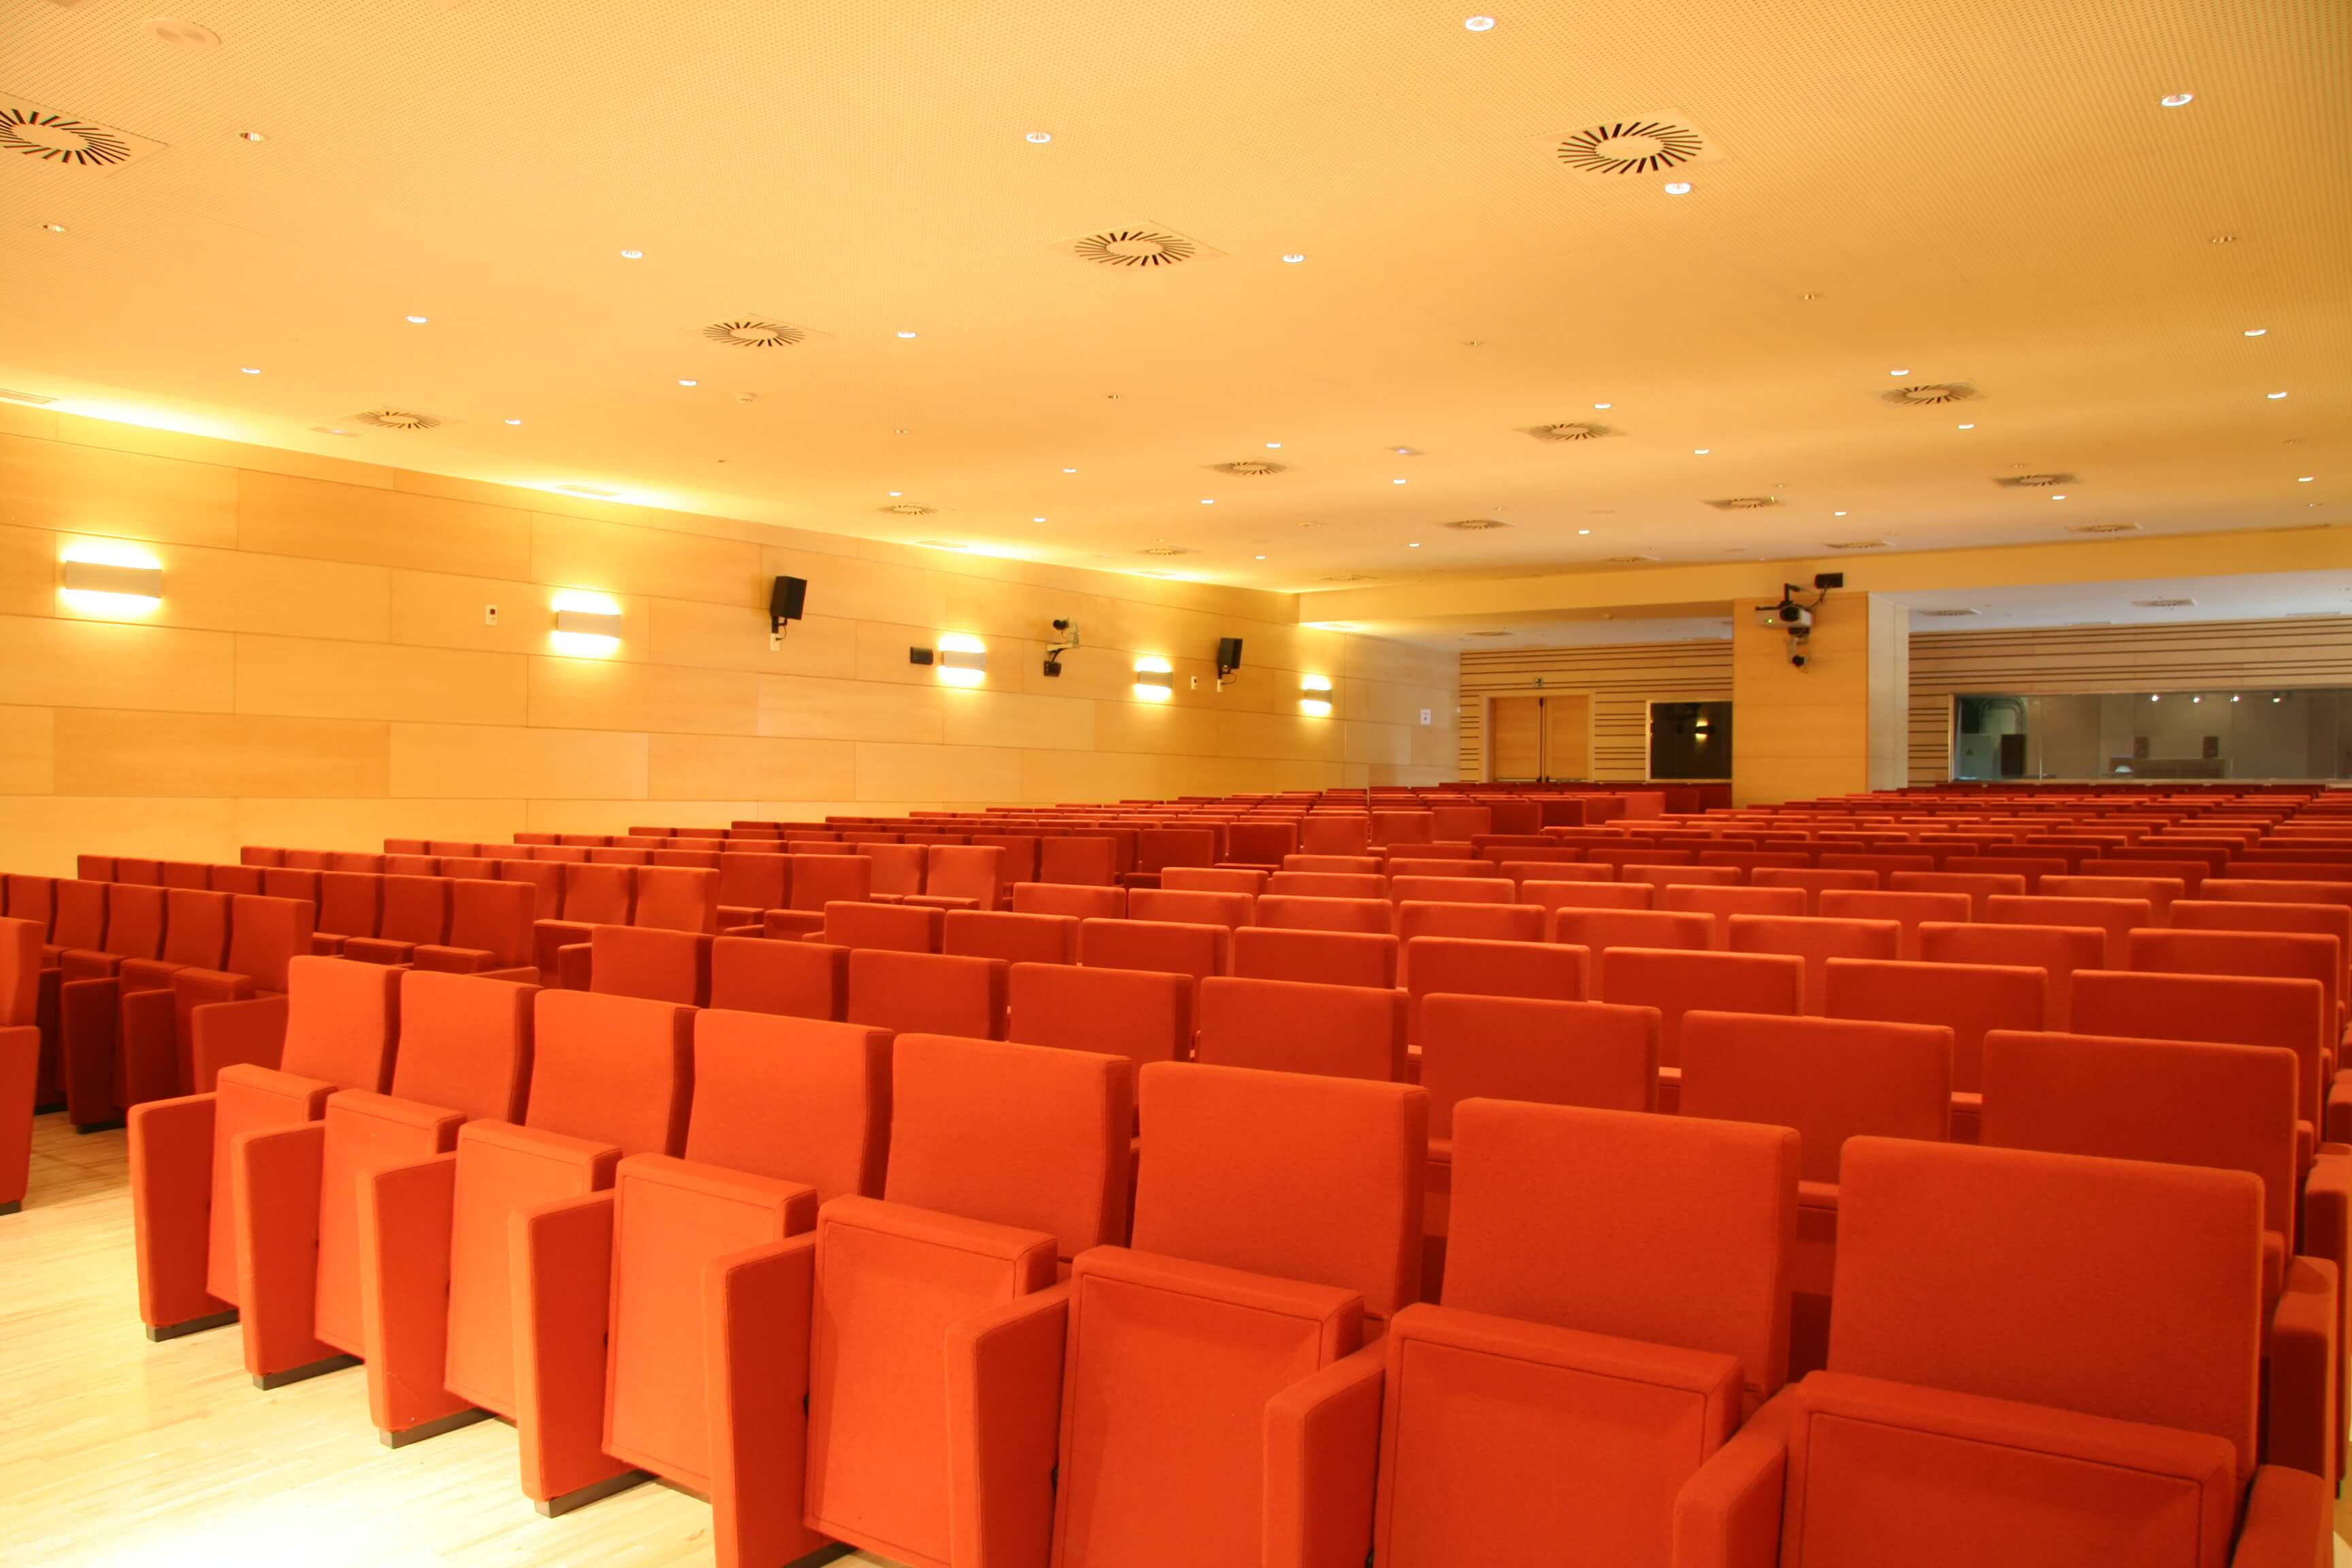 Auditorio Cortes CyL sala | Muebles de oficina Spacio